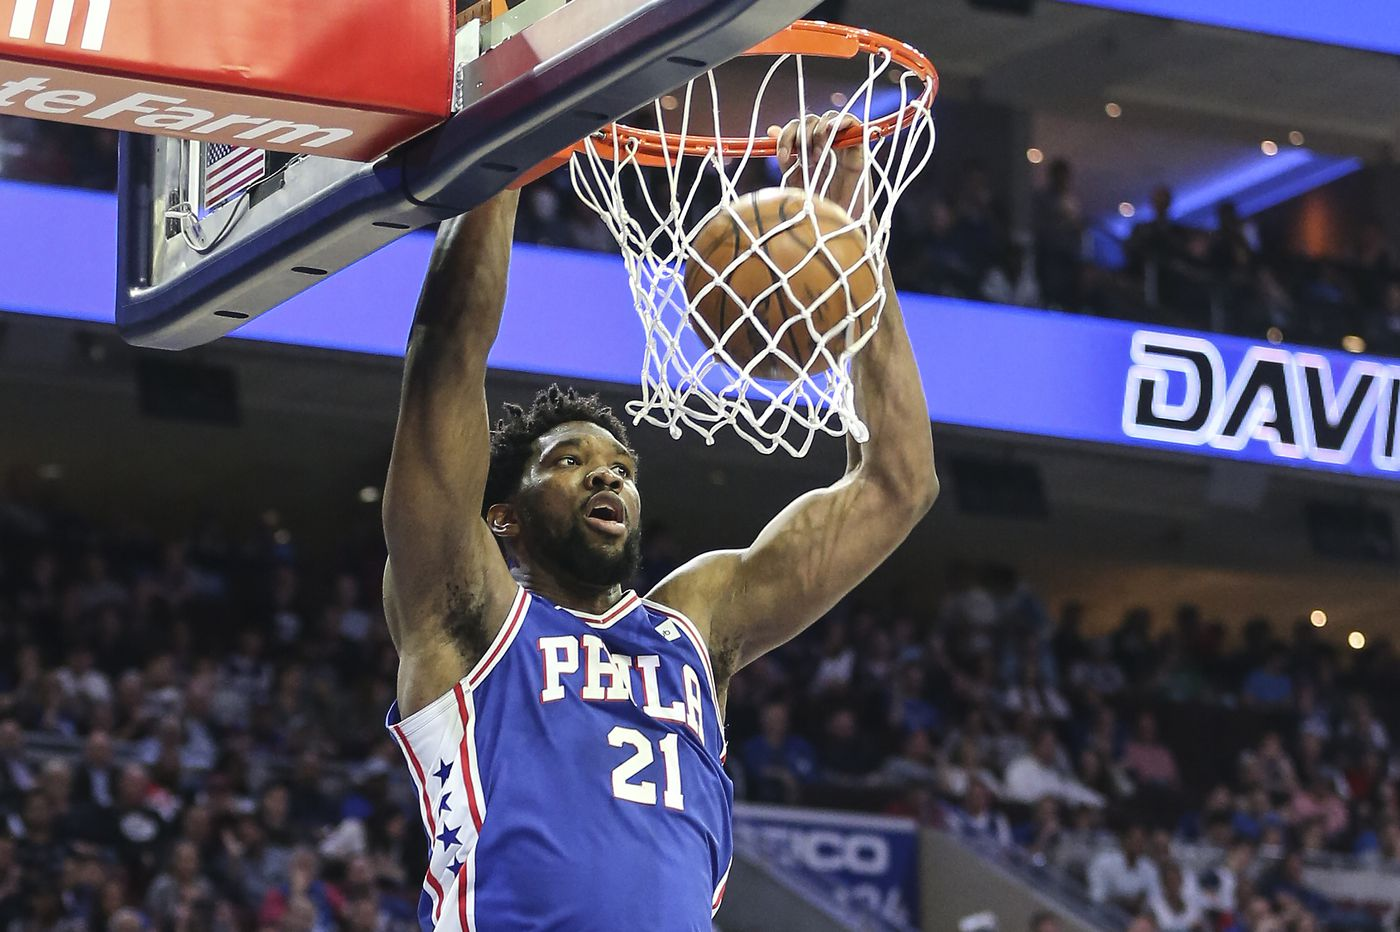 Sixers end Nets series in style; Clergy sex abuse victims hold church leaders to account online | Morning Newsletter